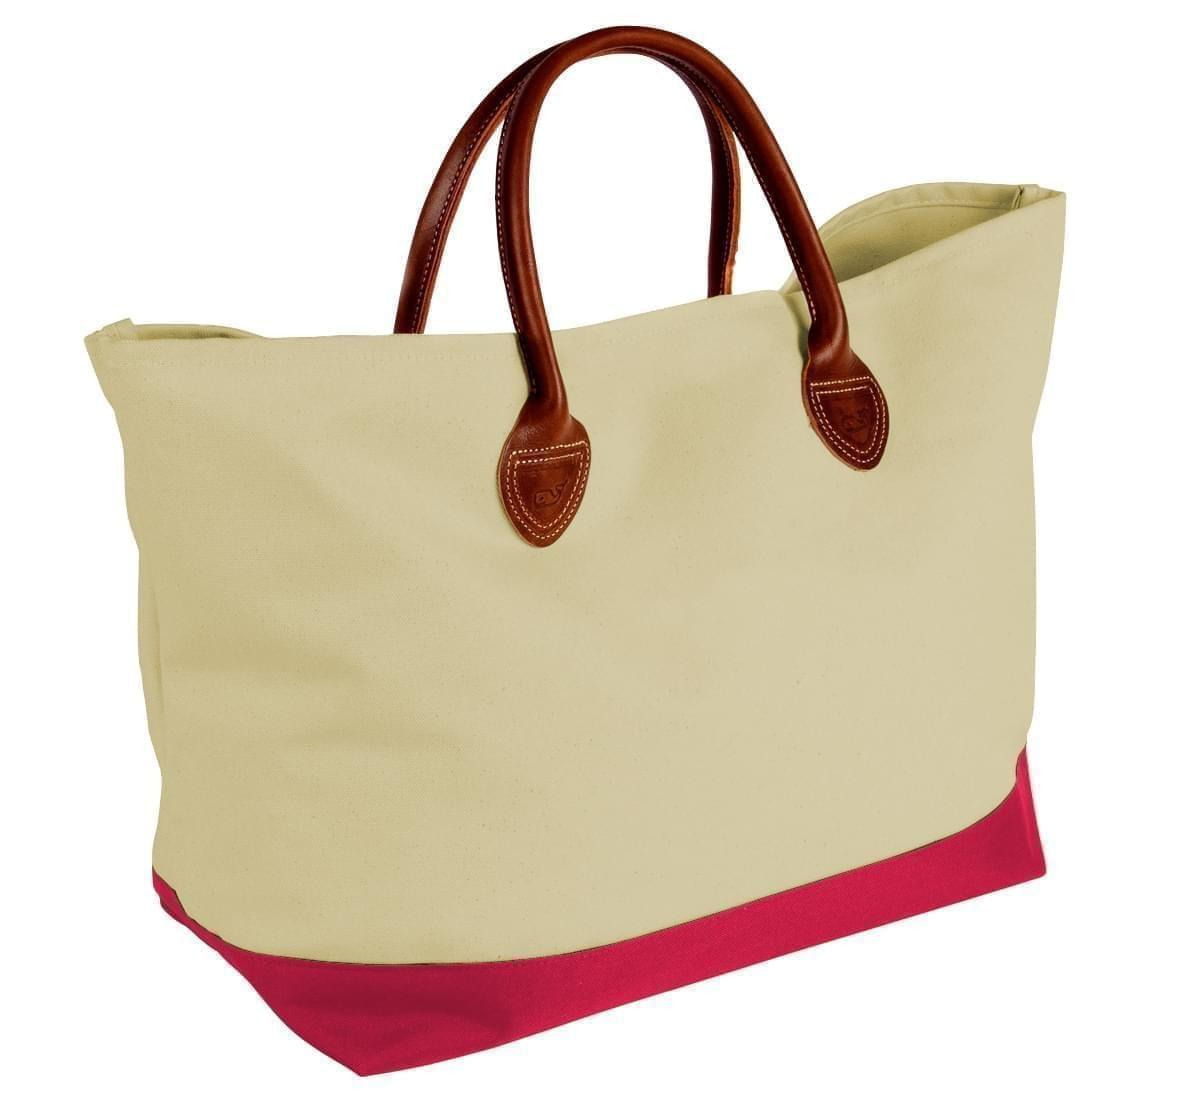 USA Made Canvas Leather Handle Totes, Natural-Red, 10899-LK9